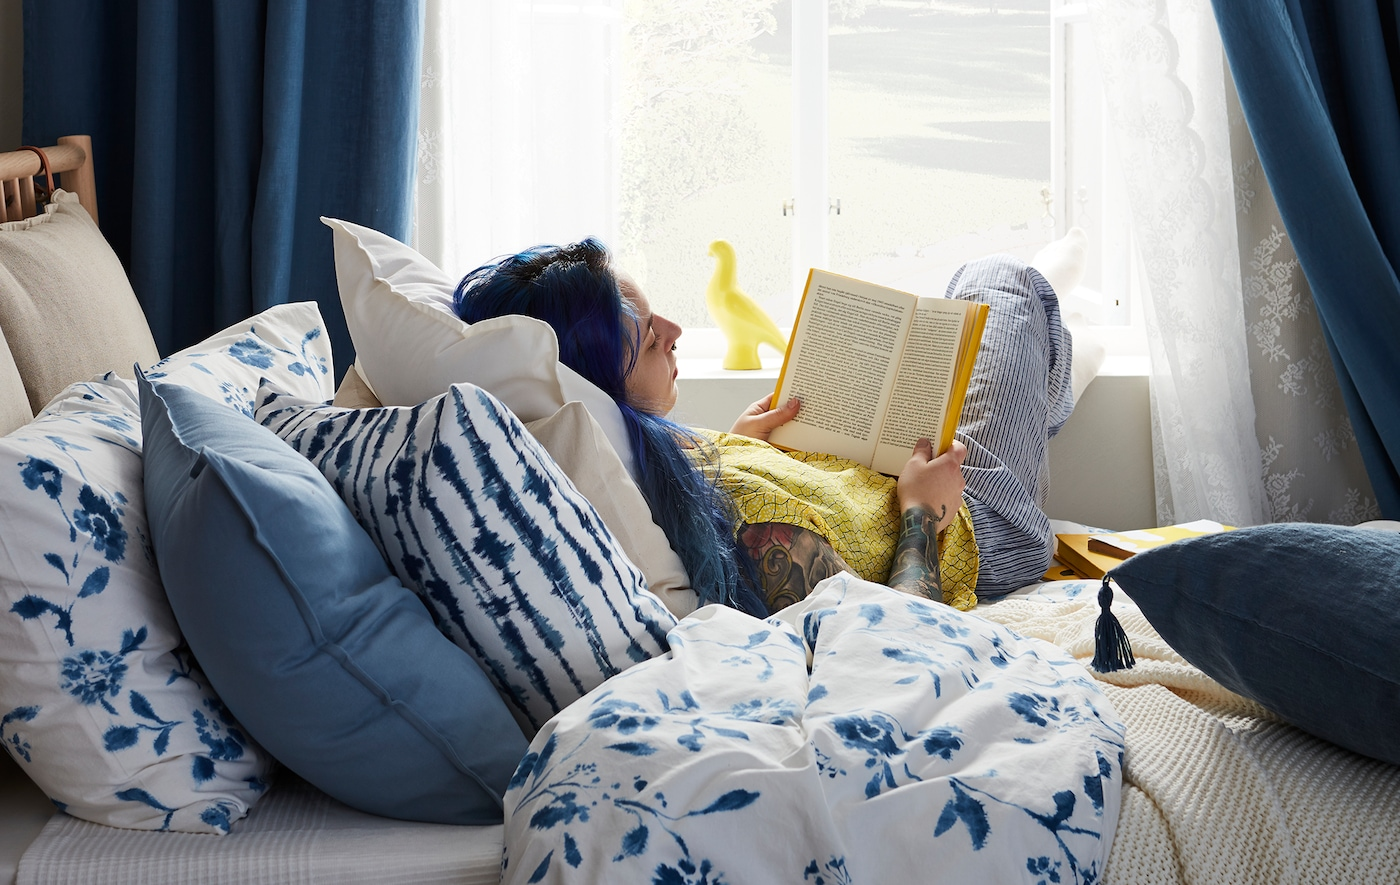 A woman reading a book in bed next to a large window.